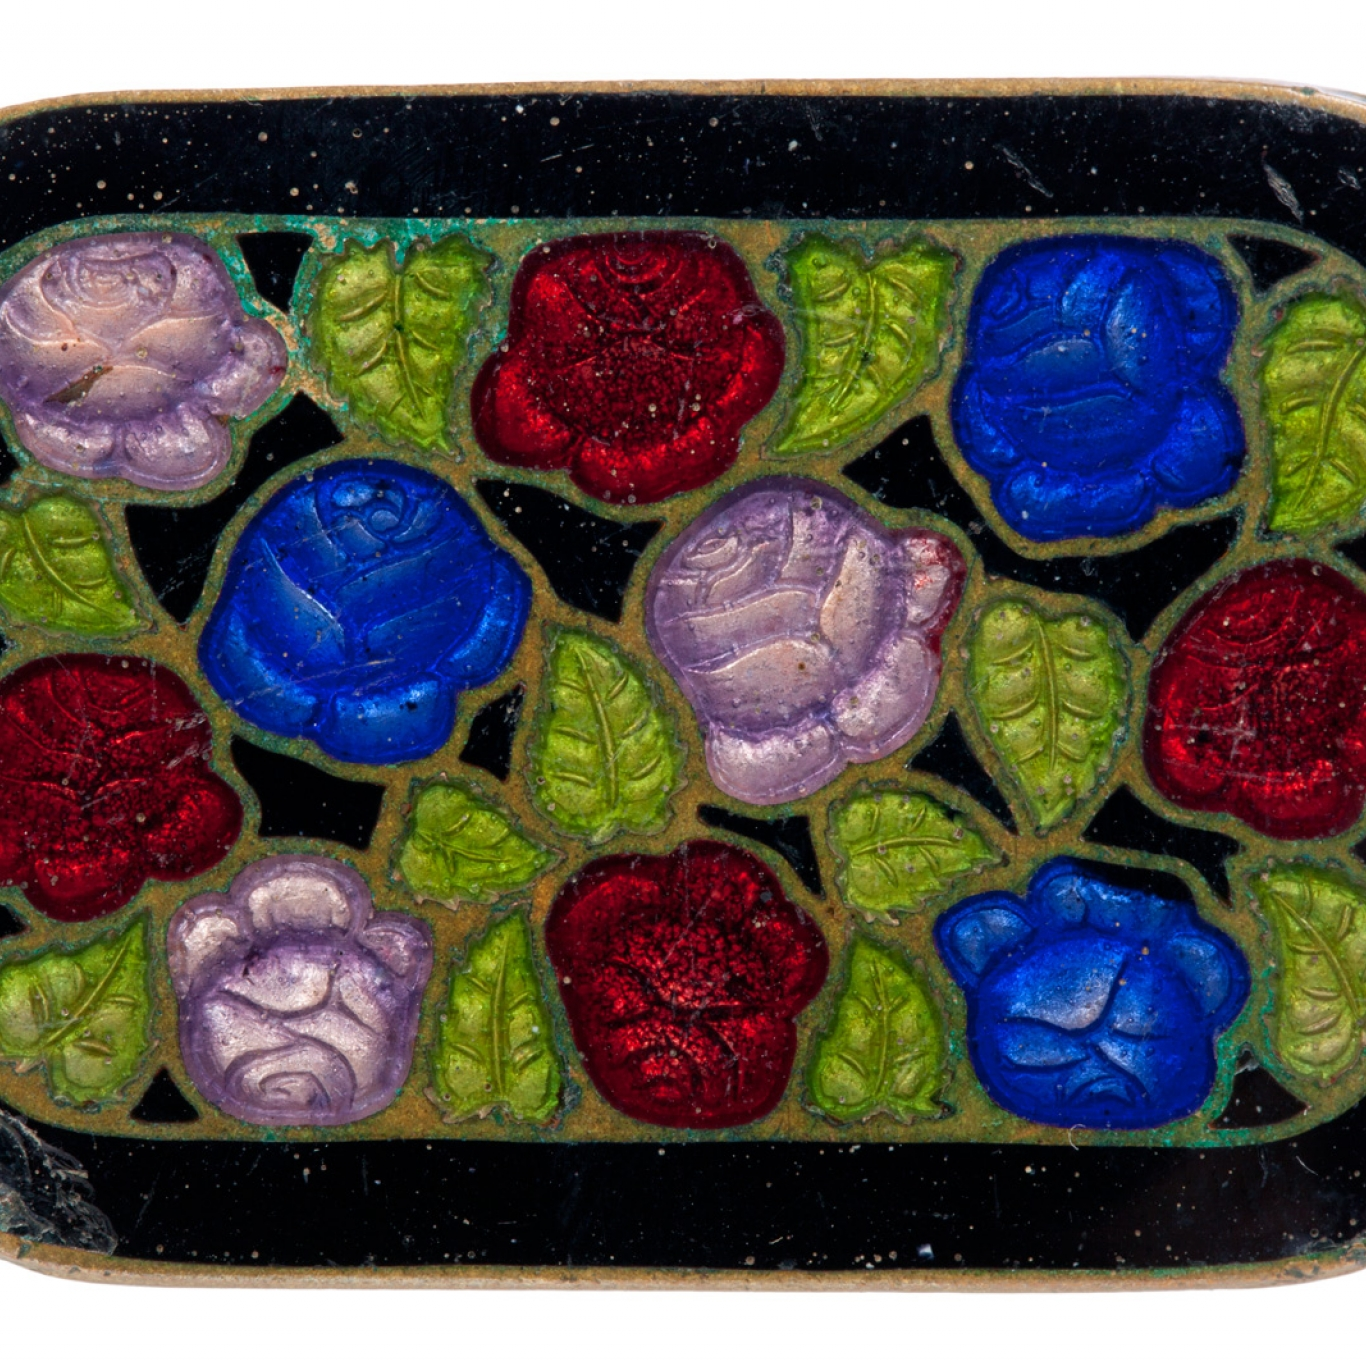 A brooch made of cloisonné enamel on brass with a design of blue, pink and red flowers and green leaves.